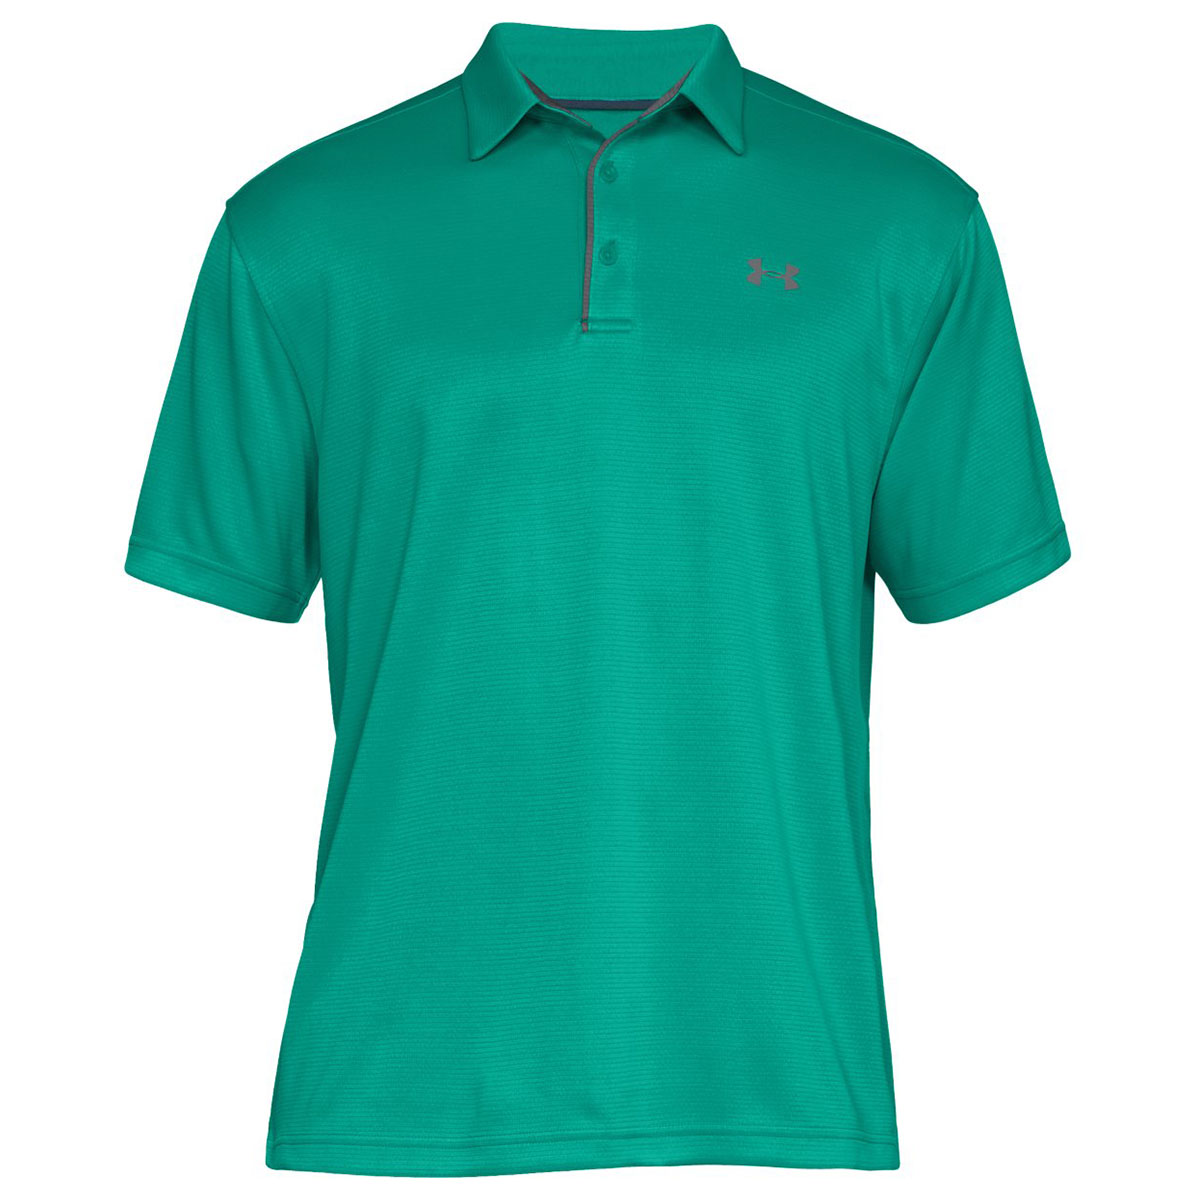 Under-Armour-Mens-Golf-Tech-Wicking-Textured-Soft-Light-Polo-Shirt thumbnail 36